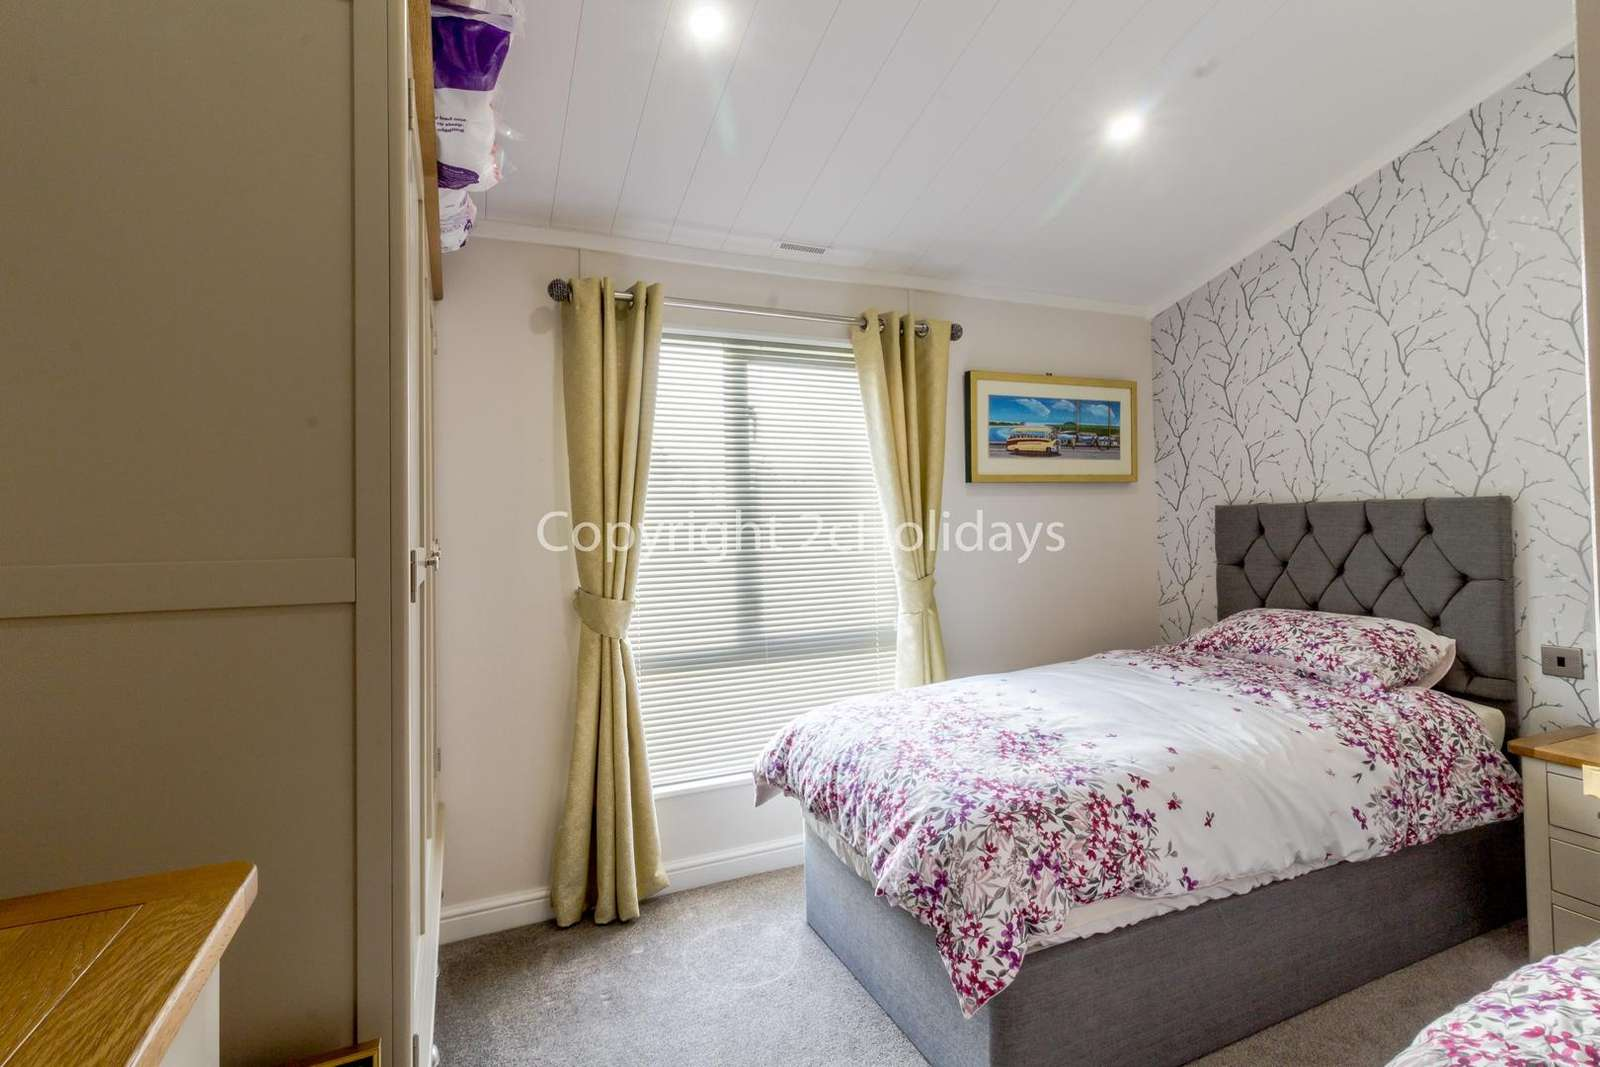 Spacious twin bedroom with space for a travel cot if needed